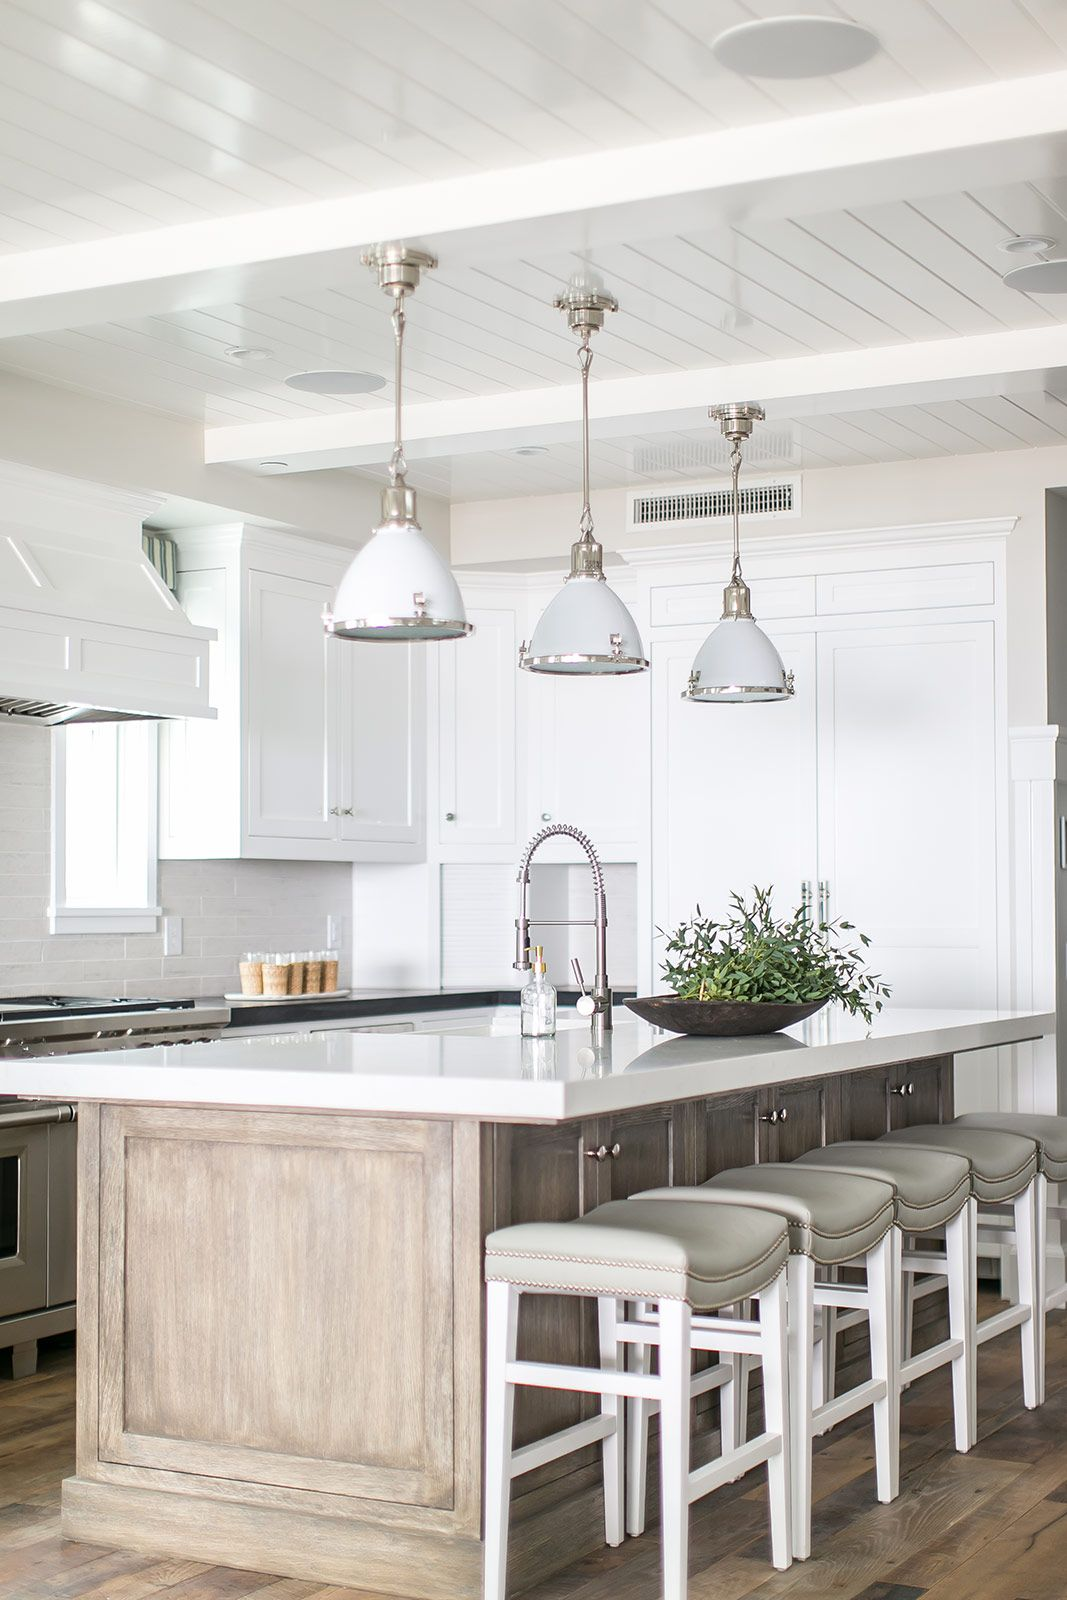 Best White Kitchen Design With Light Wooden Cabinets And 640 x 480